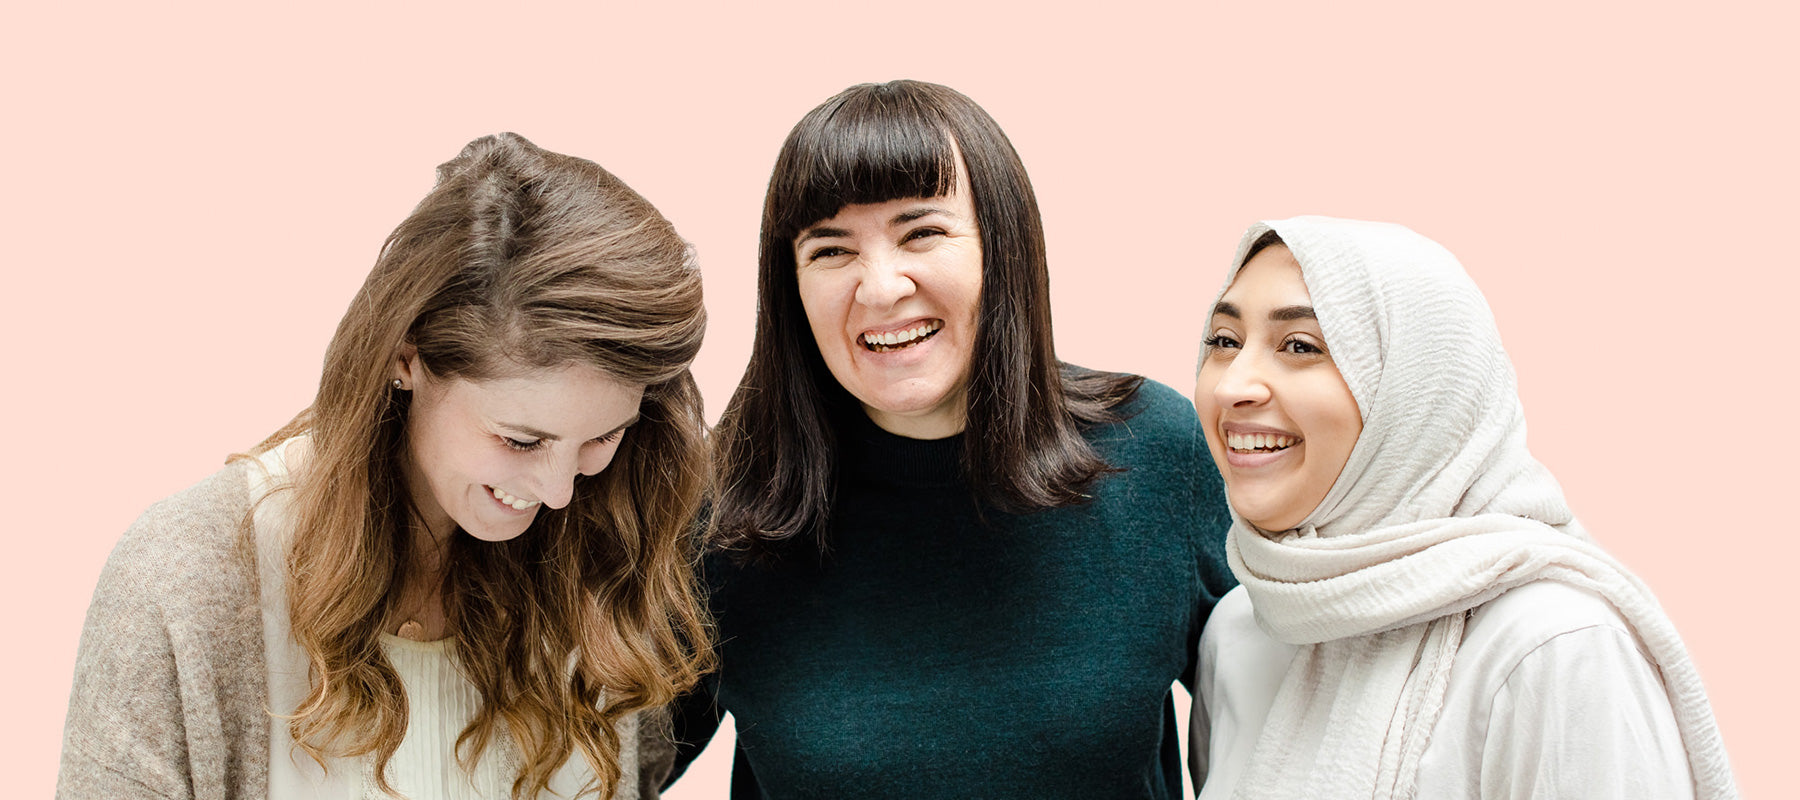 Three women, one with long light brown hair, one with dark hair and bangs, and one wearing a hijab, stand together laughing on a peach background.